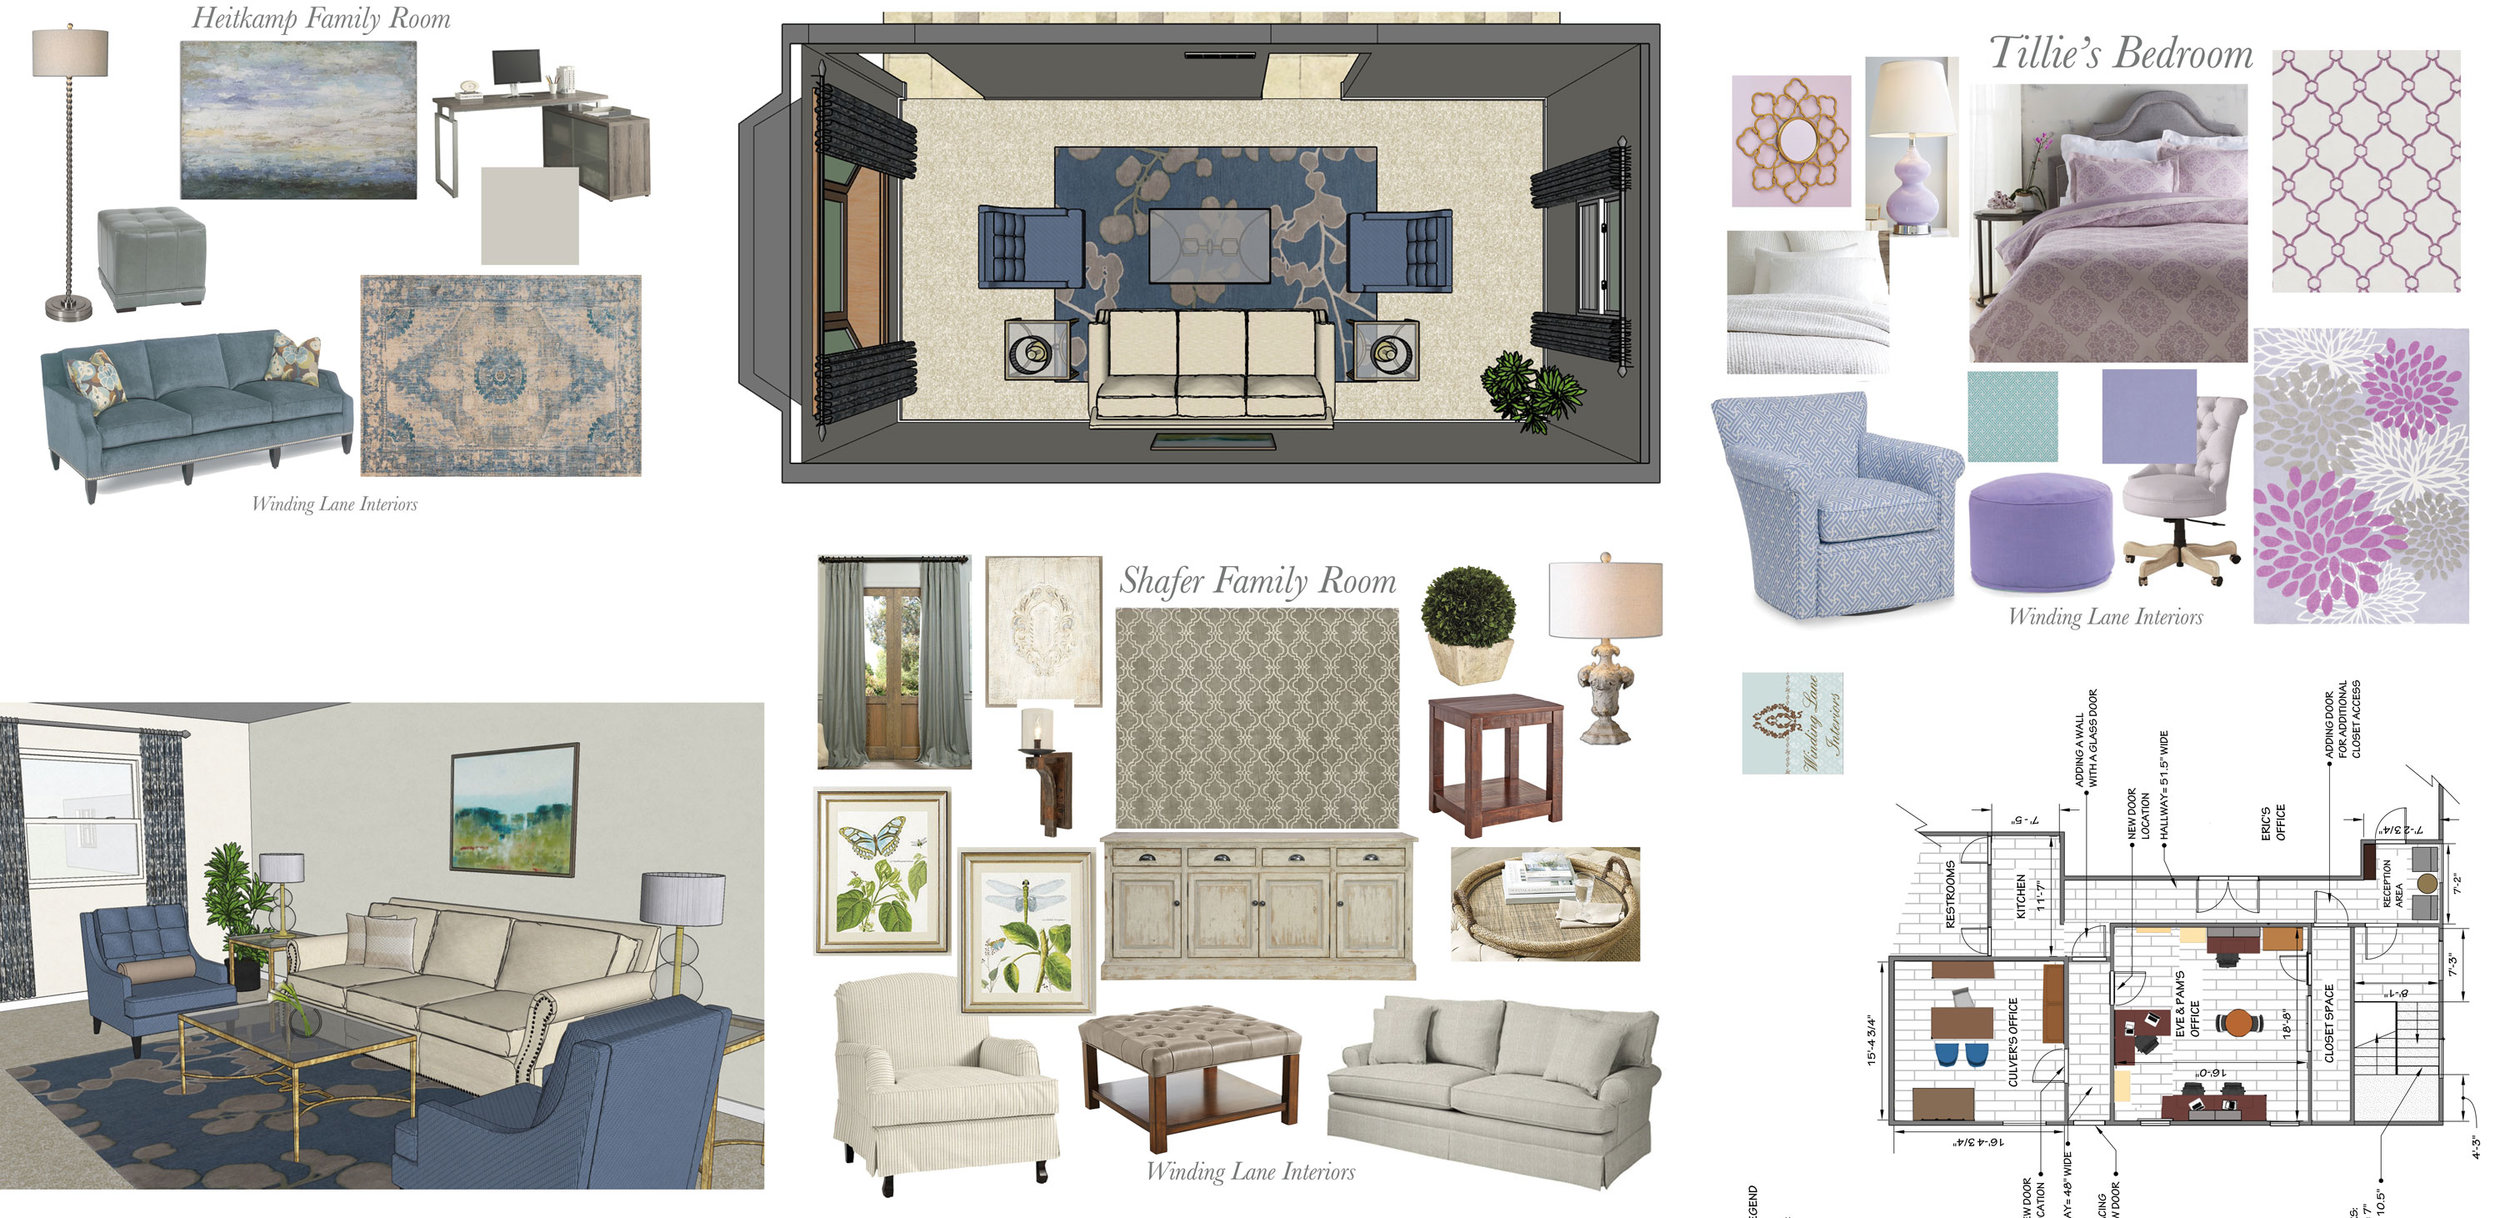 House interior design layouts and renderings